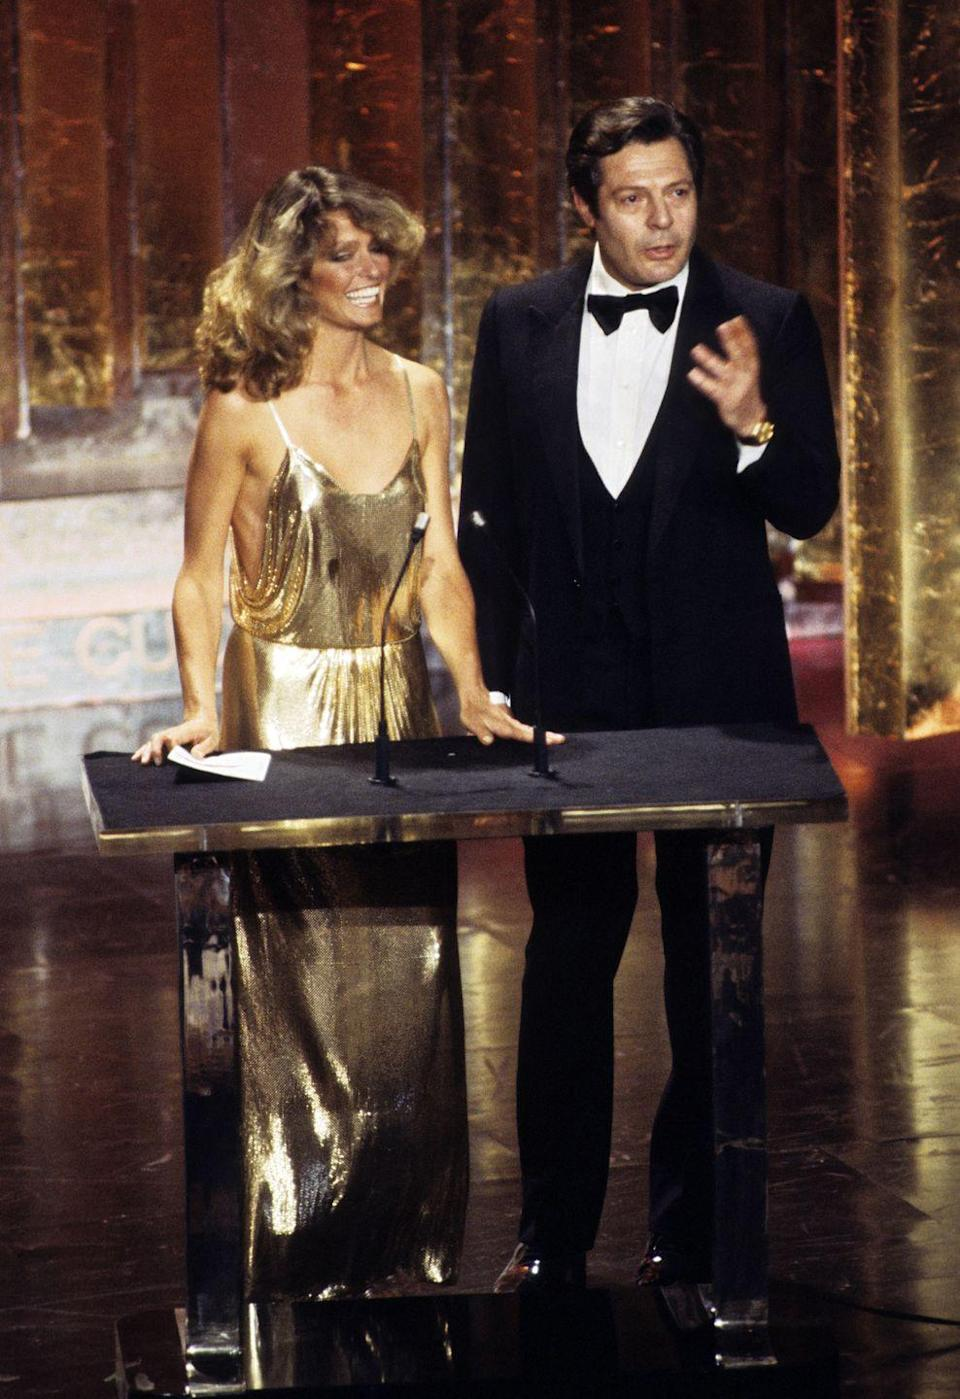 <p>Farrah Fawcett wore a metallic gold Halston dress to the 50th Annual Academy Awards. The <em>Charlie's Angels</em> actress is shown here with Italian actor Marcello Mastroianni.</p>